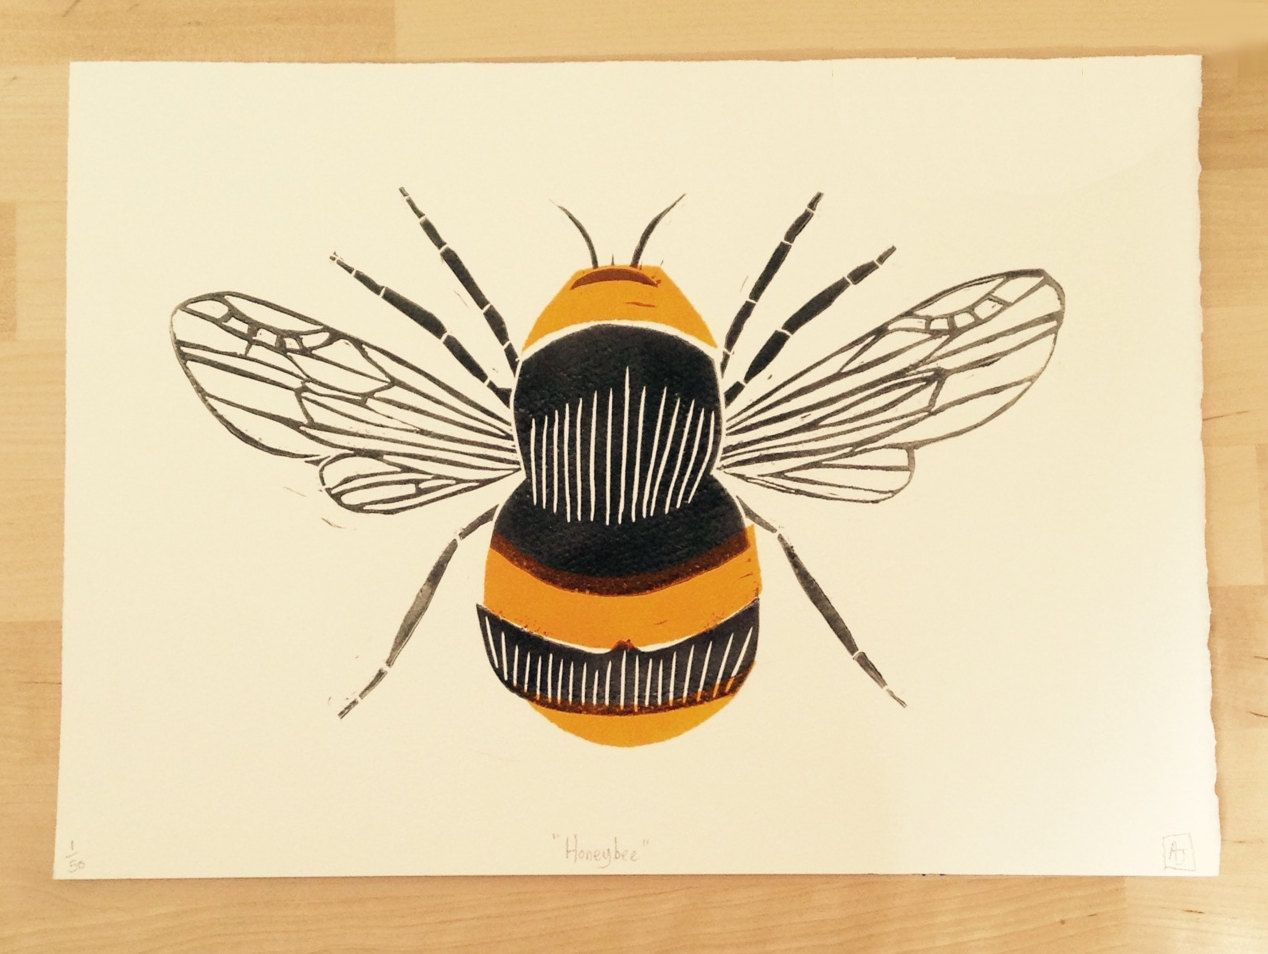 Handprinted linocut Honey Bee by Rositaprints on Etsy